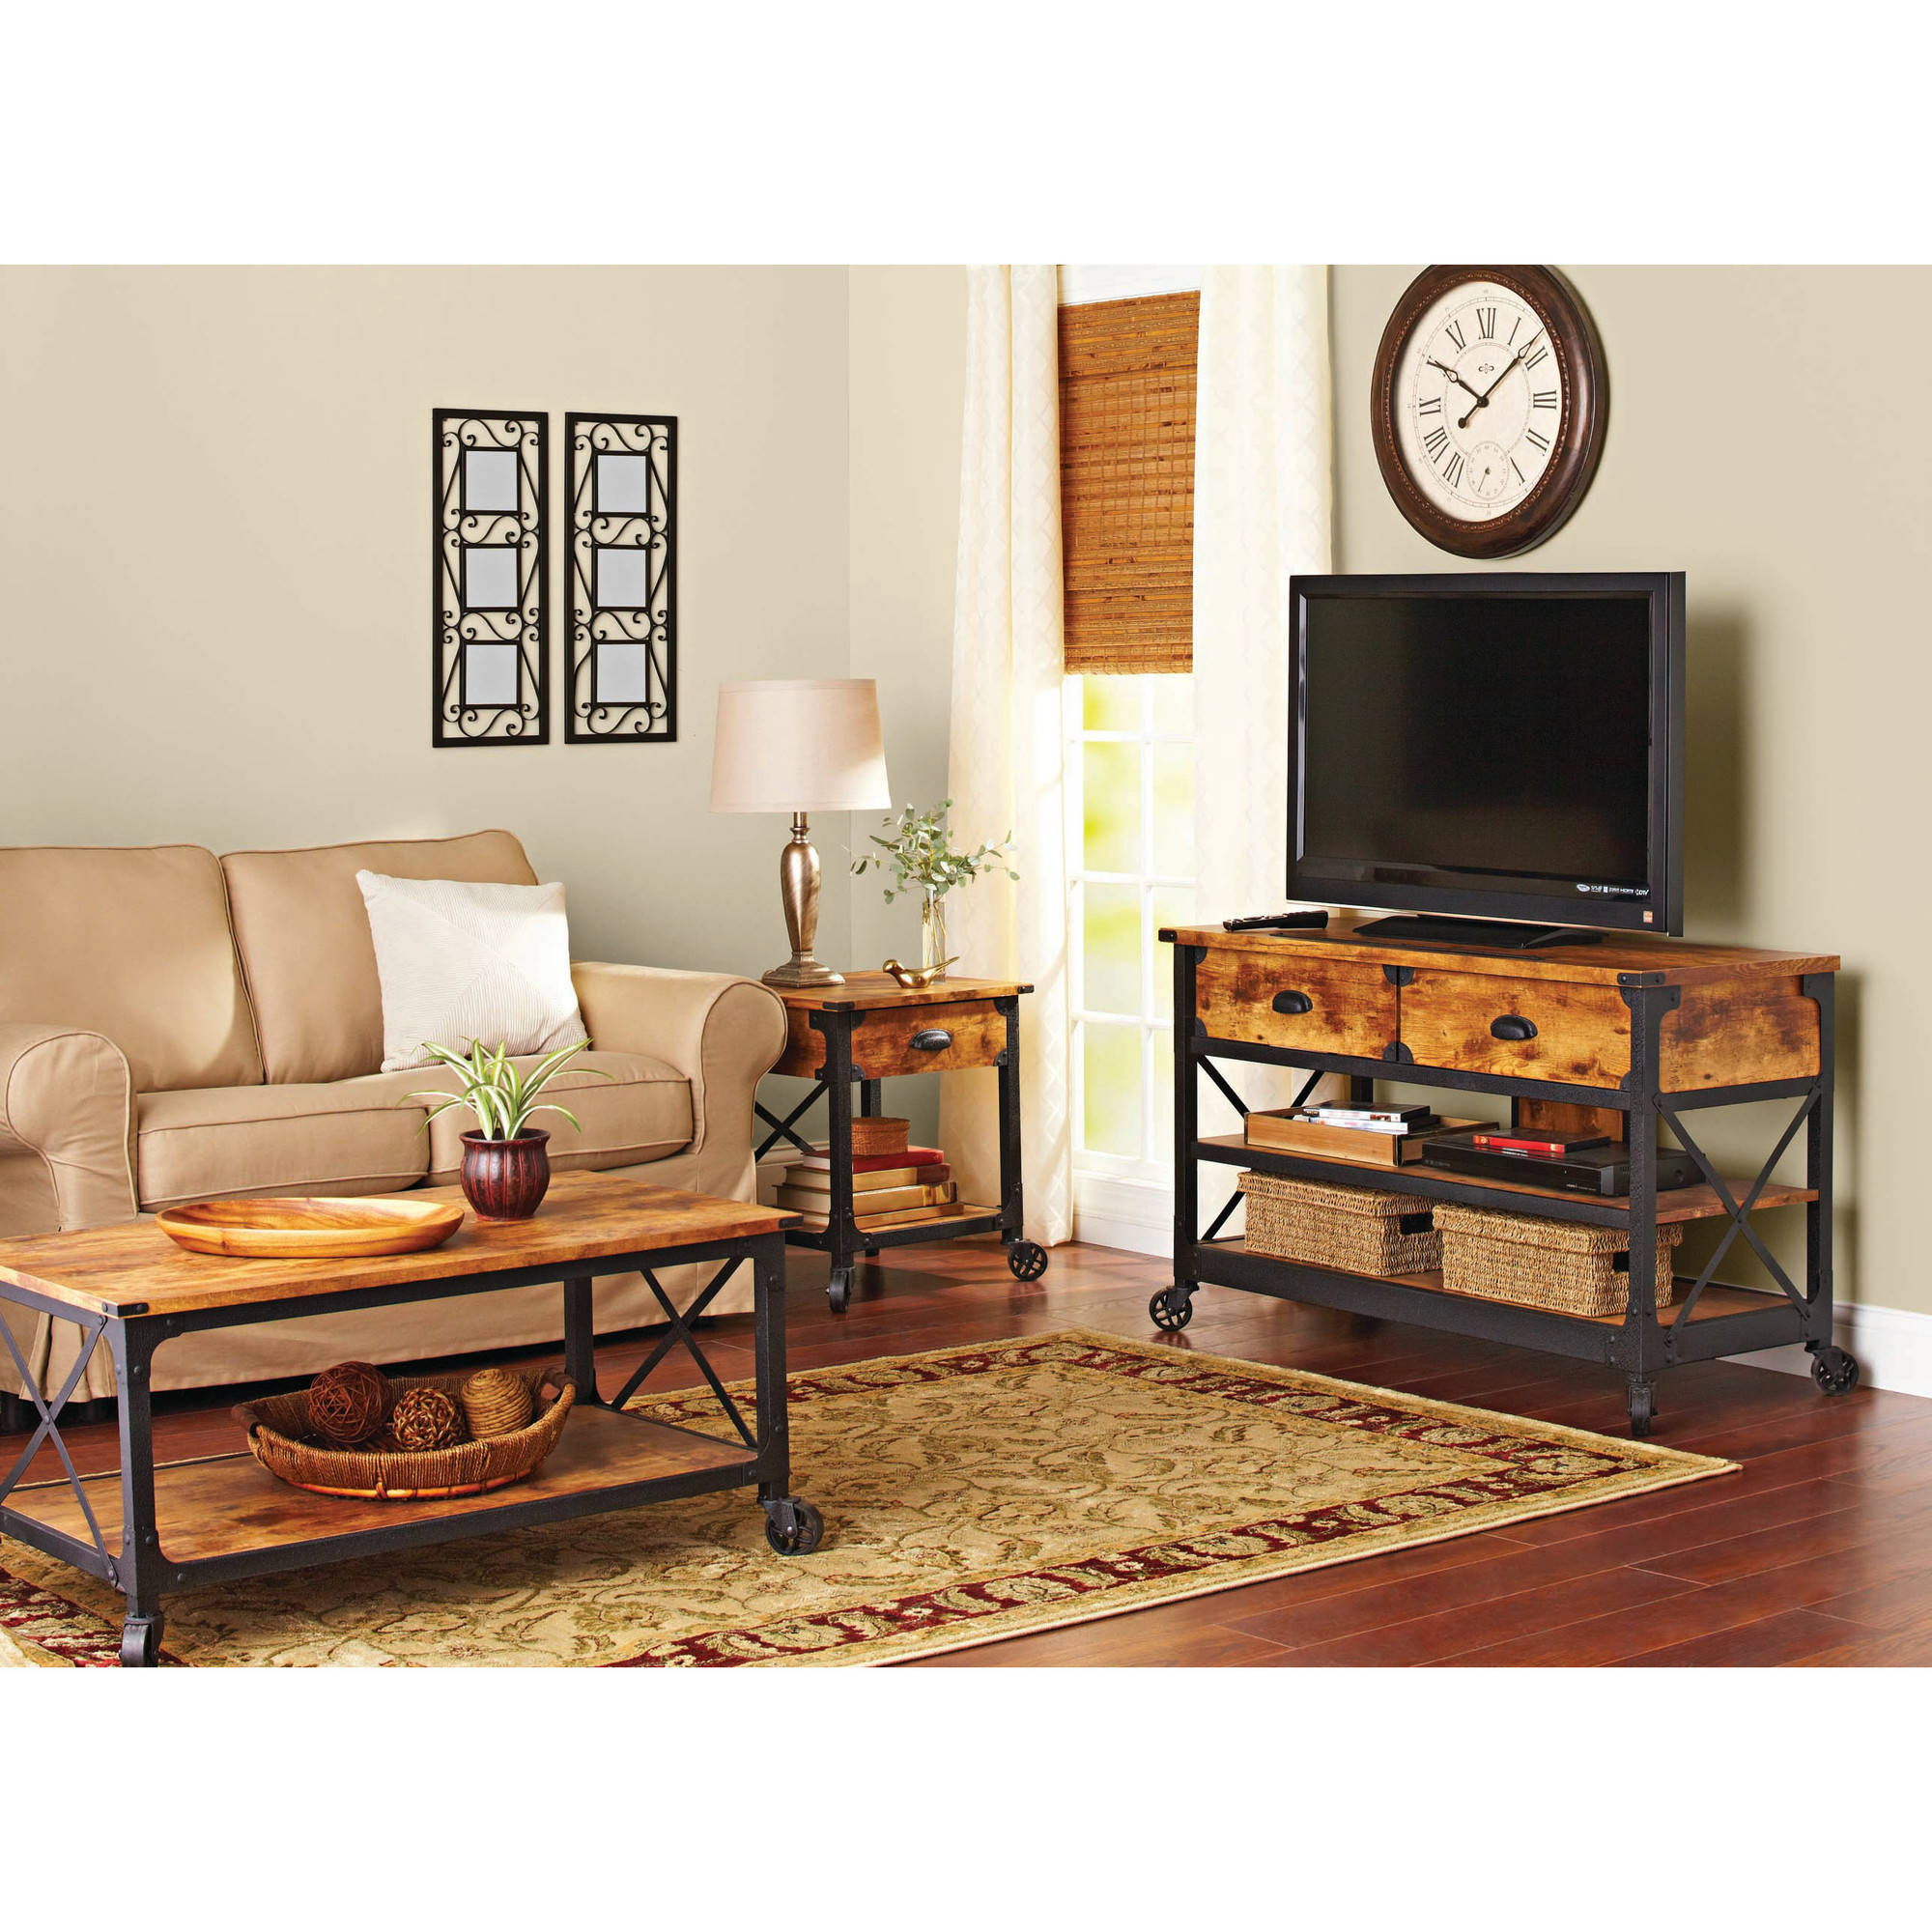 Better Homes And Gardens Rustic Country Living Room Set Walmart pertaining to Walmart Living Room Sets